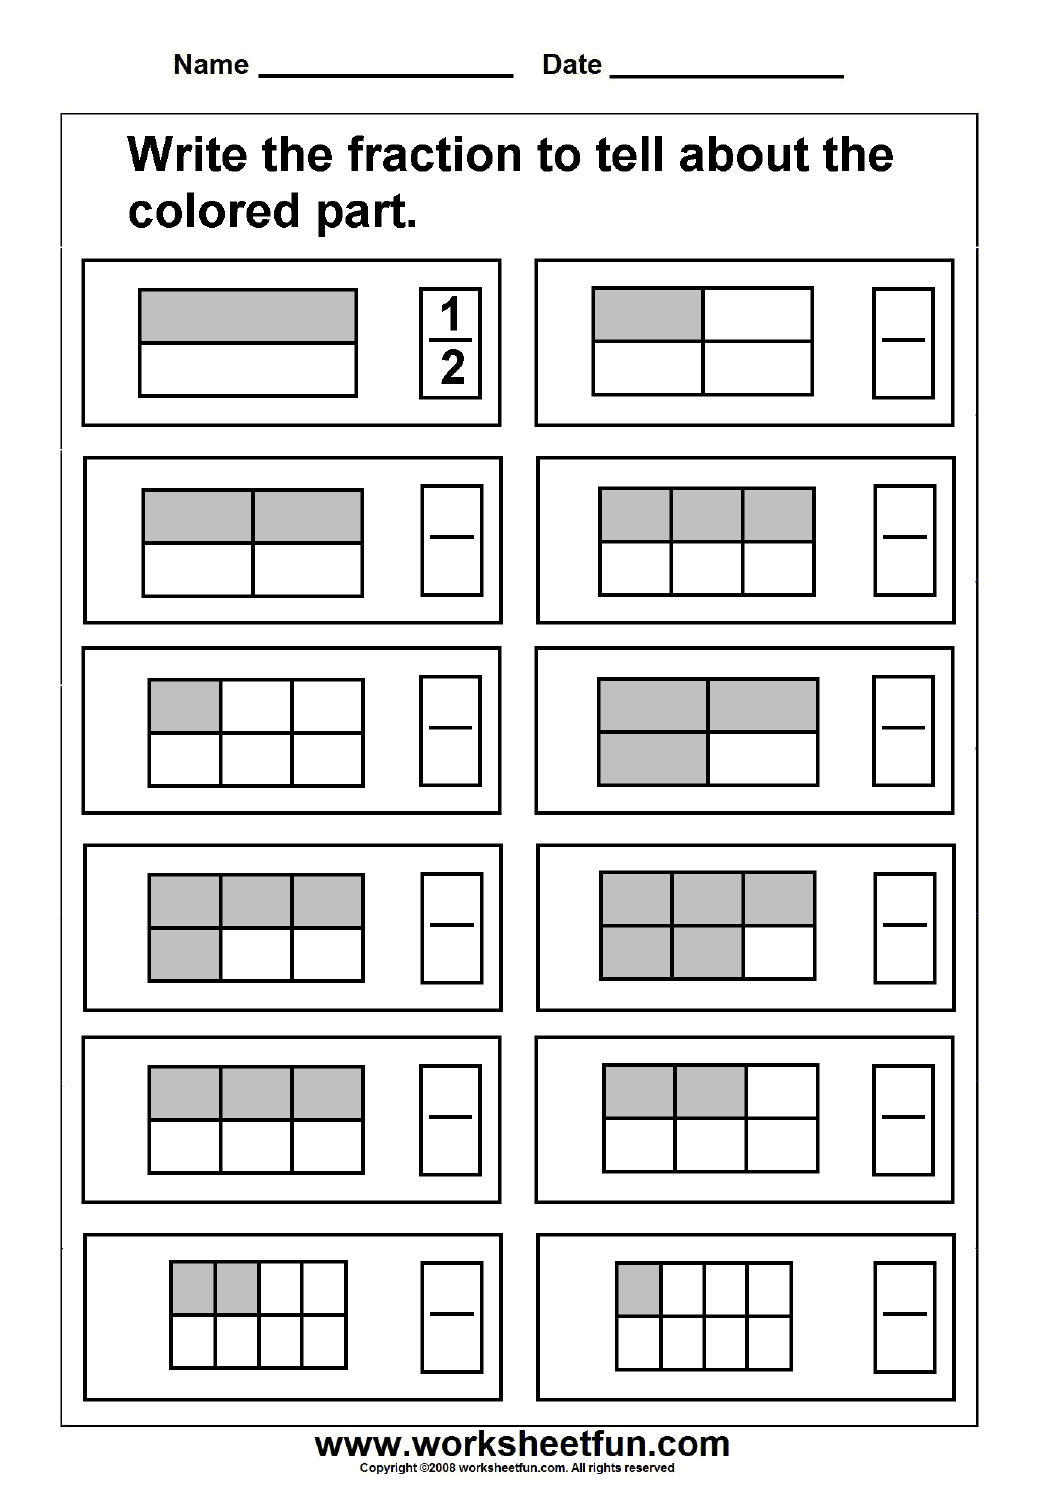 Worksheets Fraction Worksheets For 1st Grade fraction model free printable worksheets worksheetfun 3 worksheets